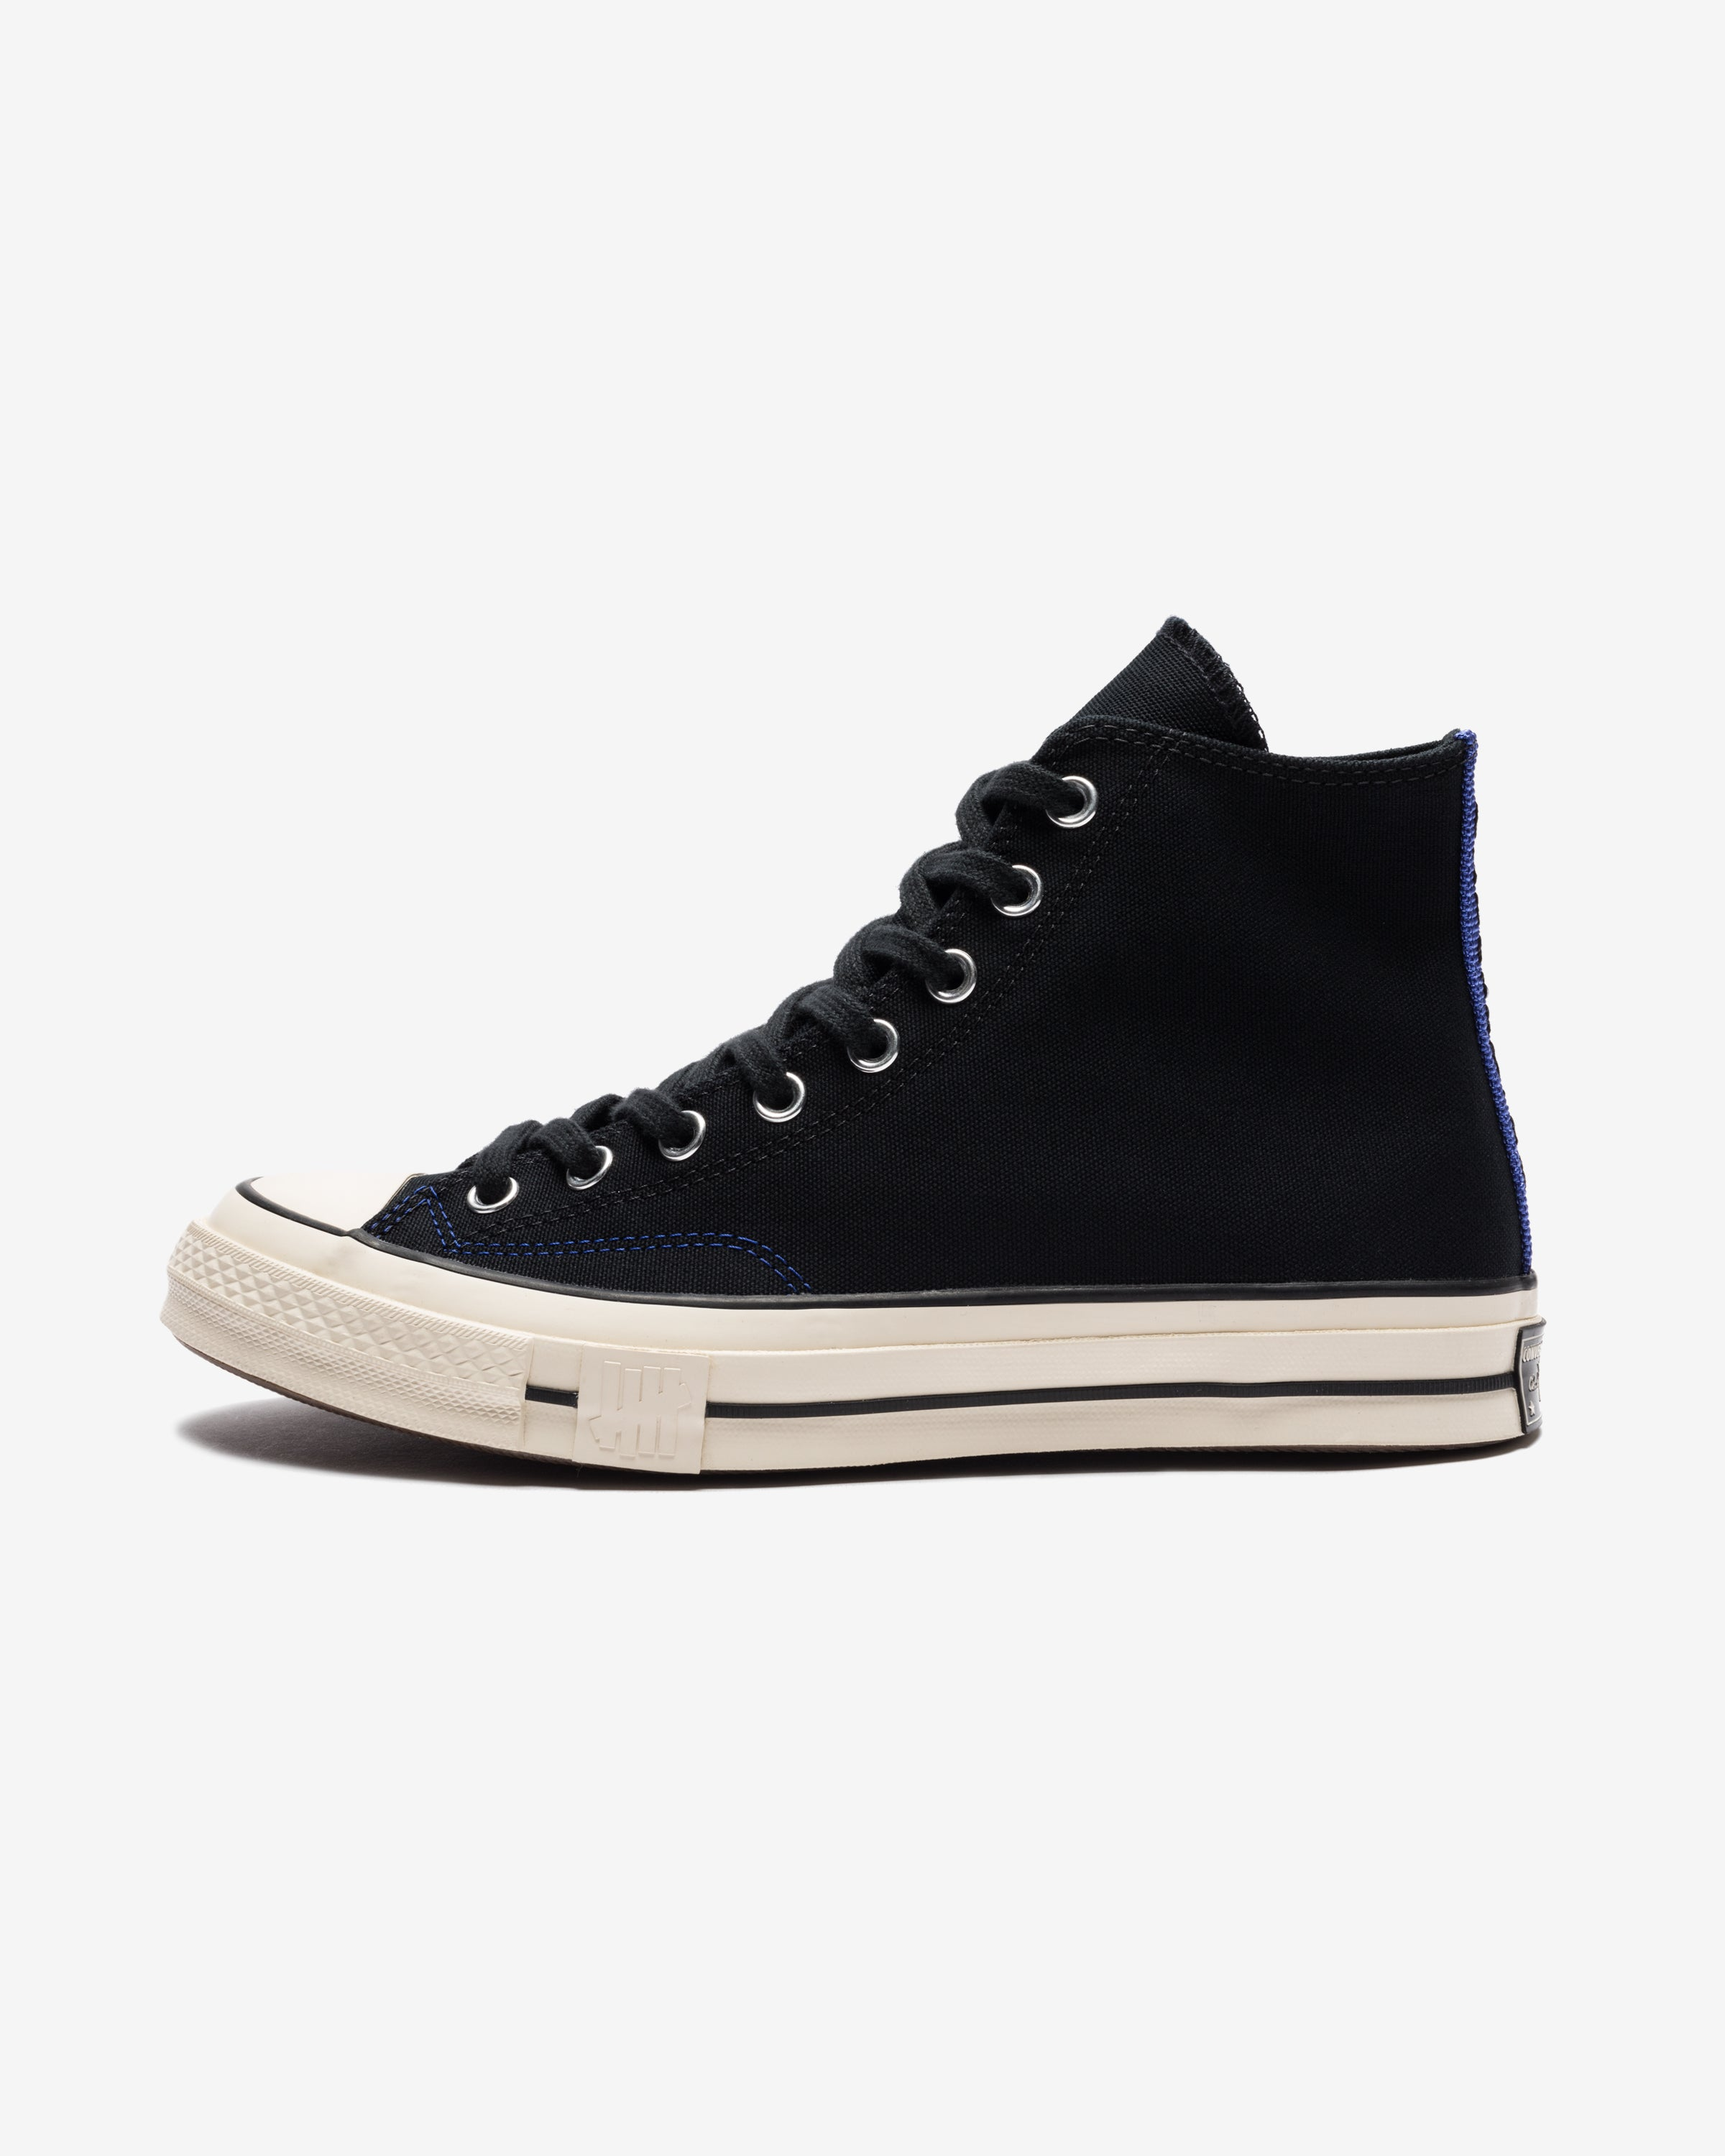 CONVERSE X UNDEFEATED CHUCK 70 HI - BLACK/ NATURALIVORY